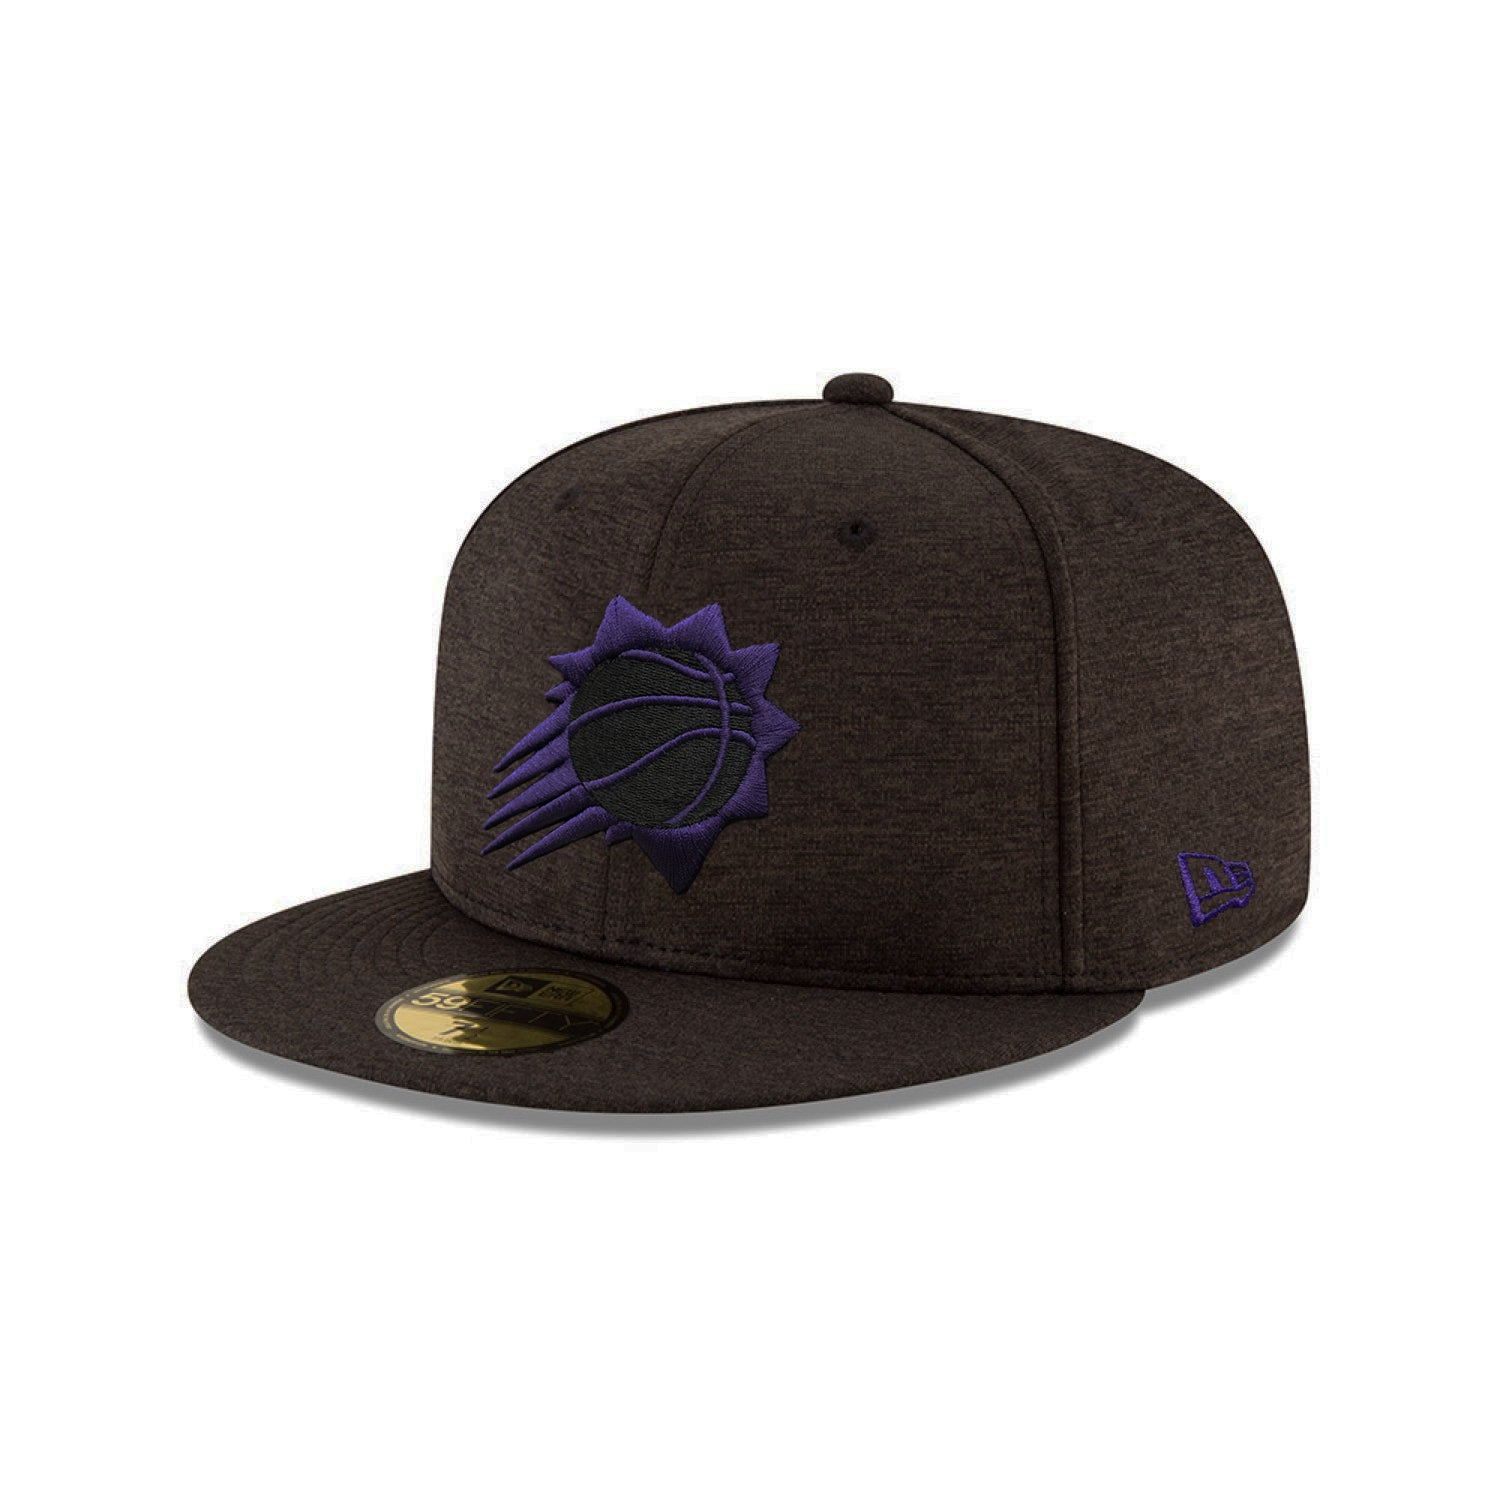 NBA Phoenix Suns New Era Shadows 59FIFTY Fitted Hat eb4ed2315a5